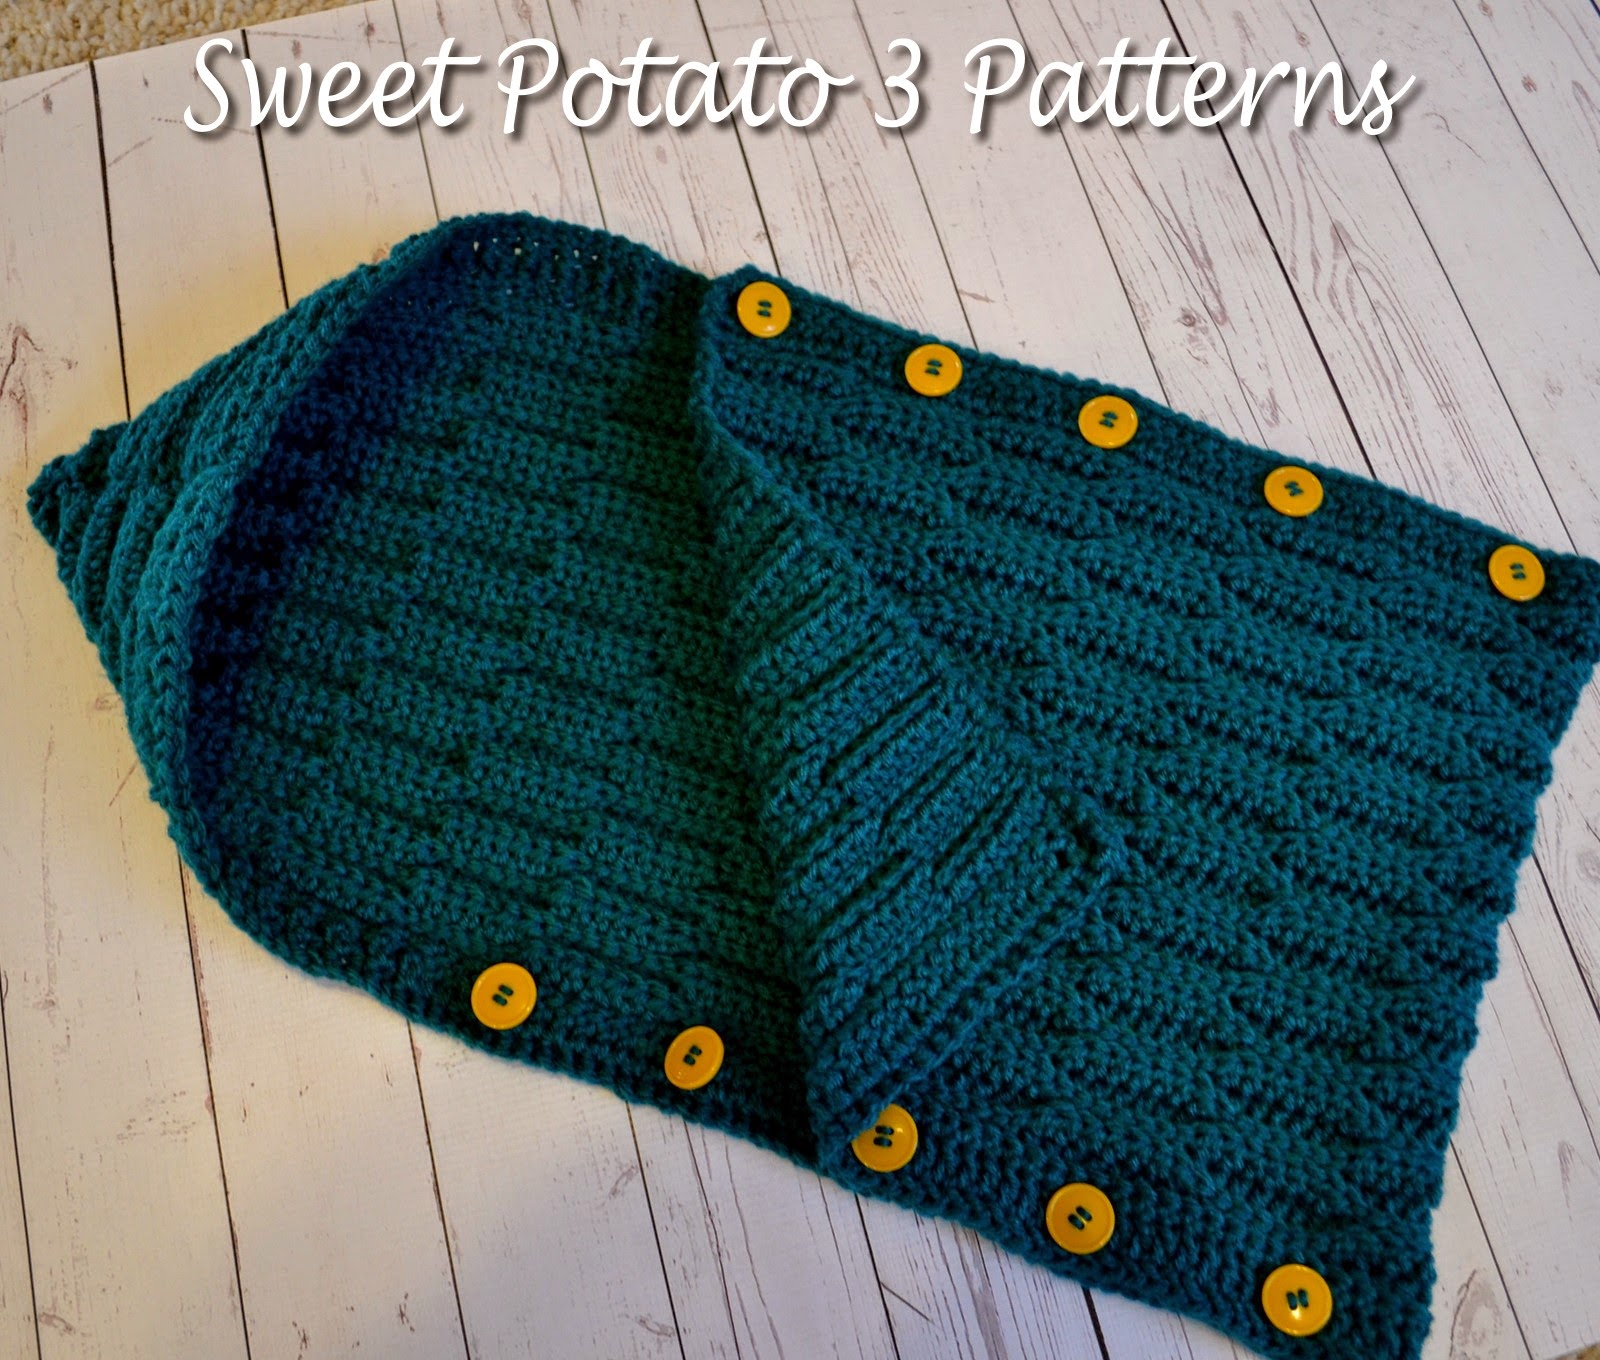 Button Up Waves Hooded Cocoon Pattern Release - Sweet Potato 3